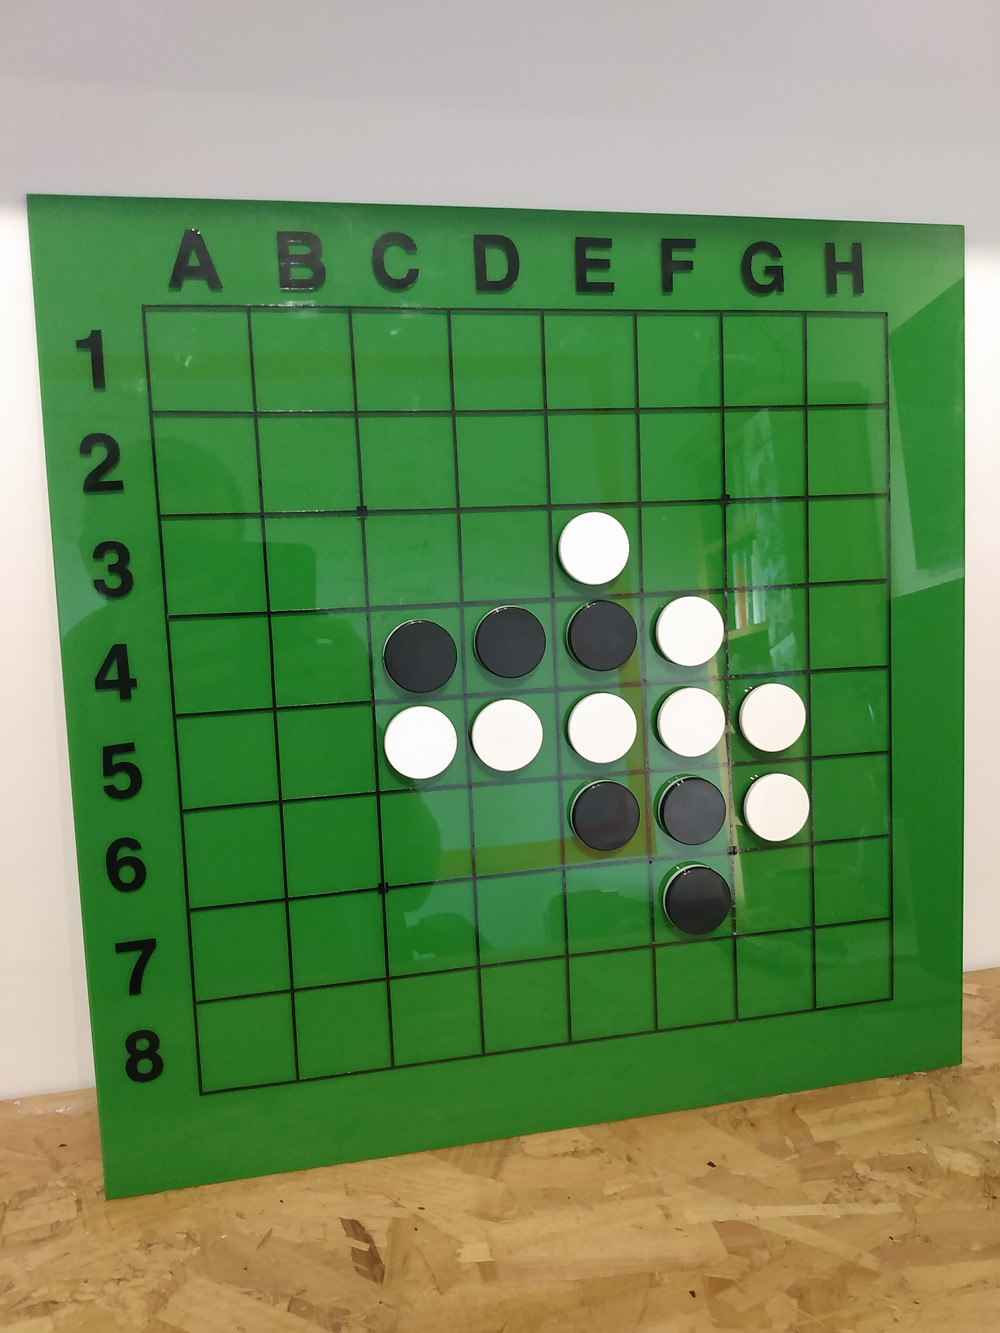 Finished magneic Othello board showing 'Dead draw' position'